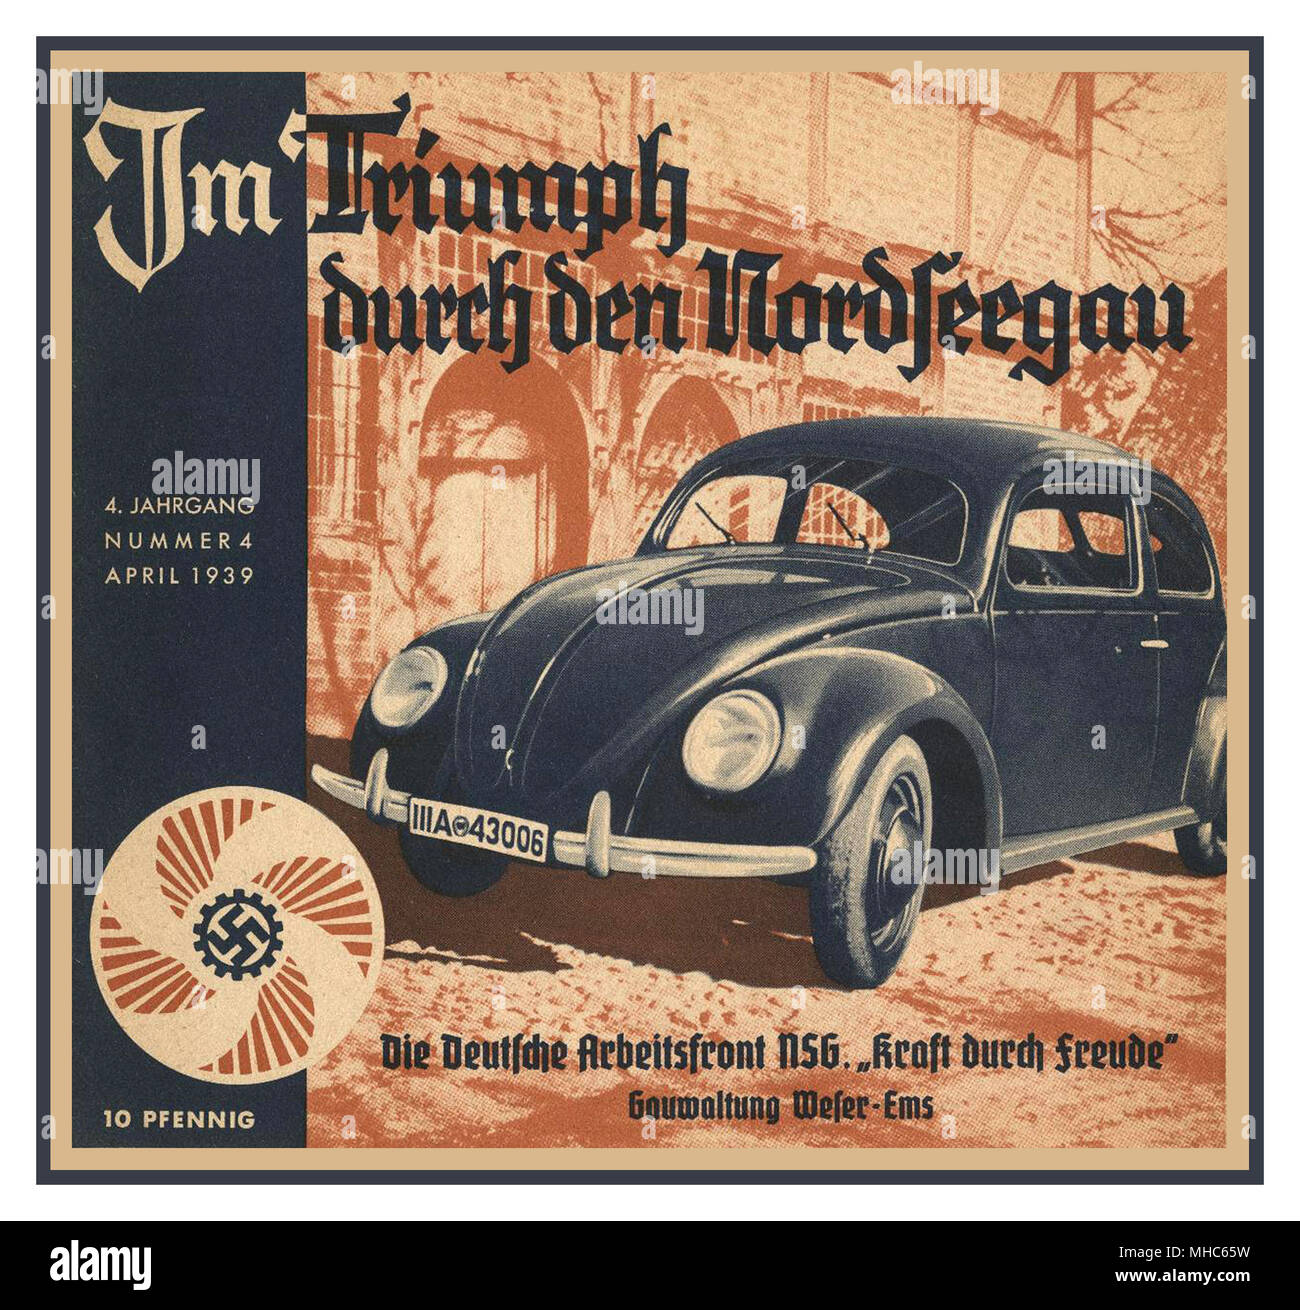 Volkswagen KDF Wagen Press advertisement 1939 -' Im Triumph durch den Nordseegau' advertisement for the Volkswagen KdF-Wagen (predecessor name of Beetle). The auto manufacturer, Volkswagen, was founded as part of the German Labour Front's 'Kraft durch Freude', (thus the name 'KdF') or 'Strength Through Joy' policy, all which was highly representative to the ideological tenants of the 1930's NSDAP Nazi Party Germany - Stock Image